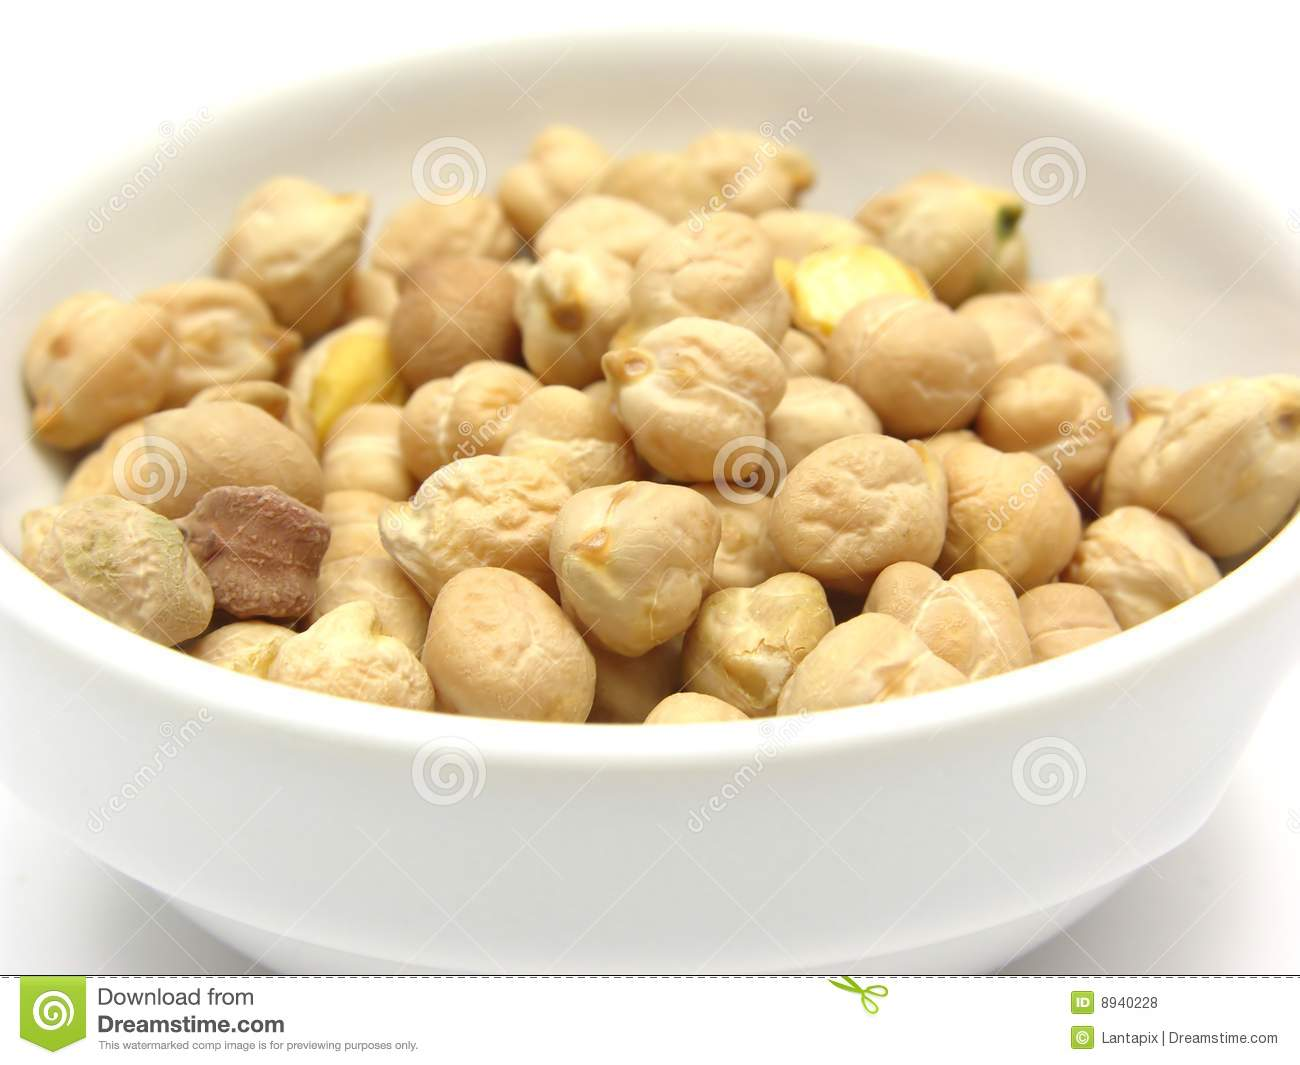 Garbanzos en blanco